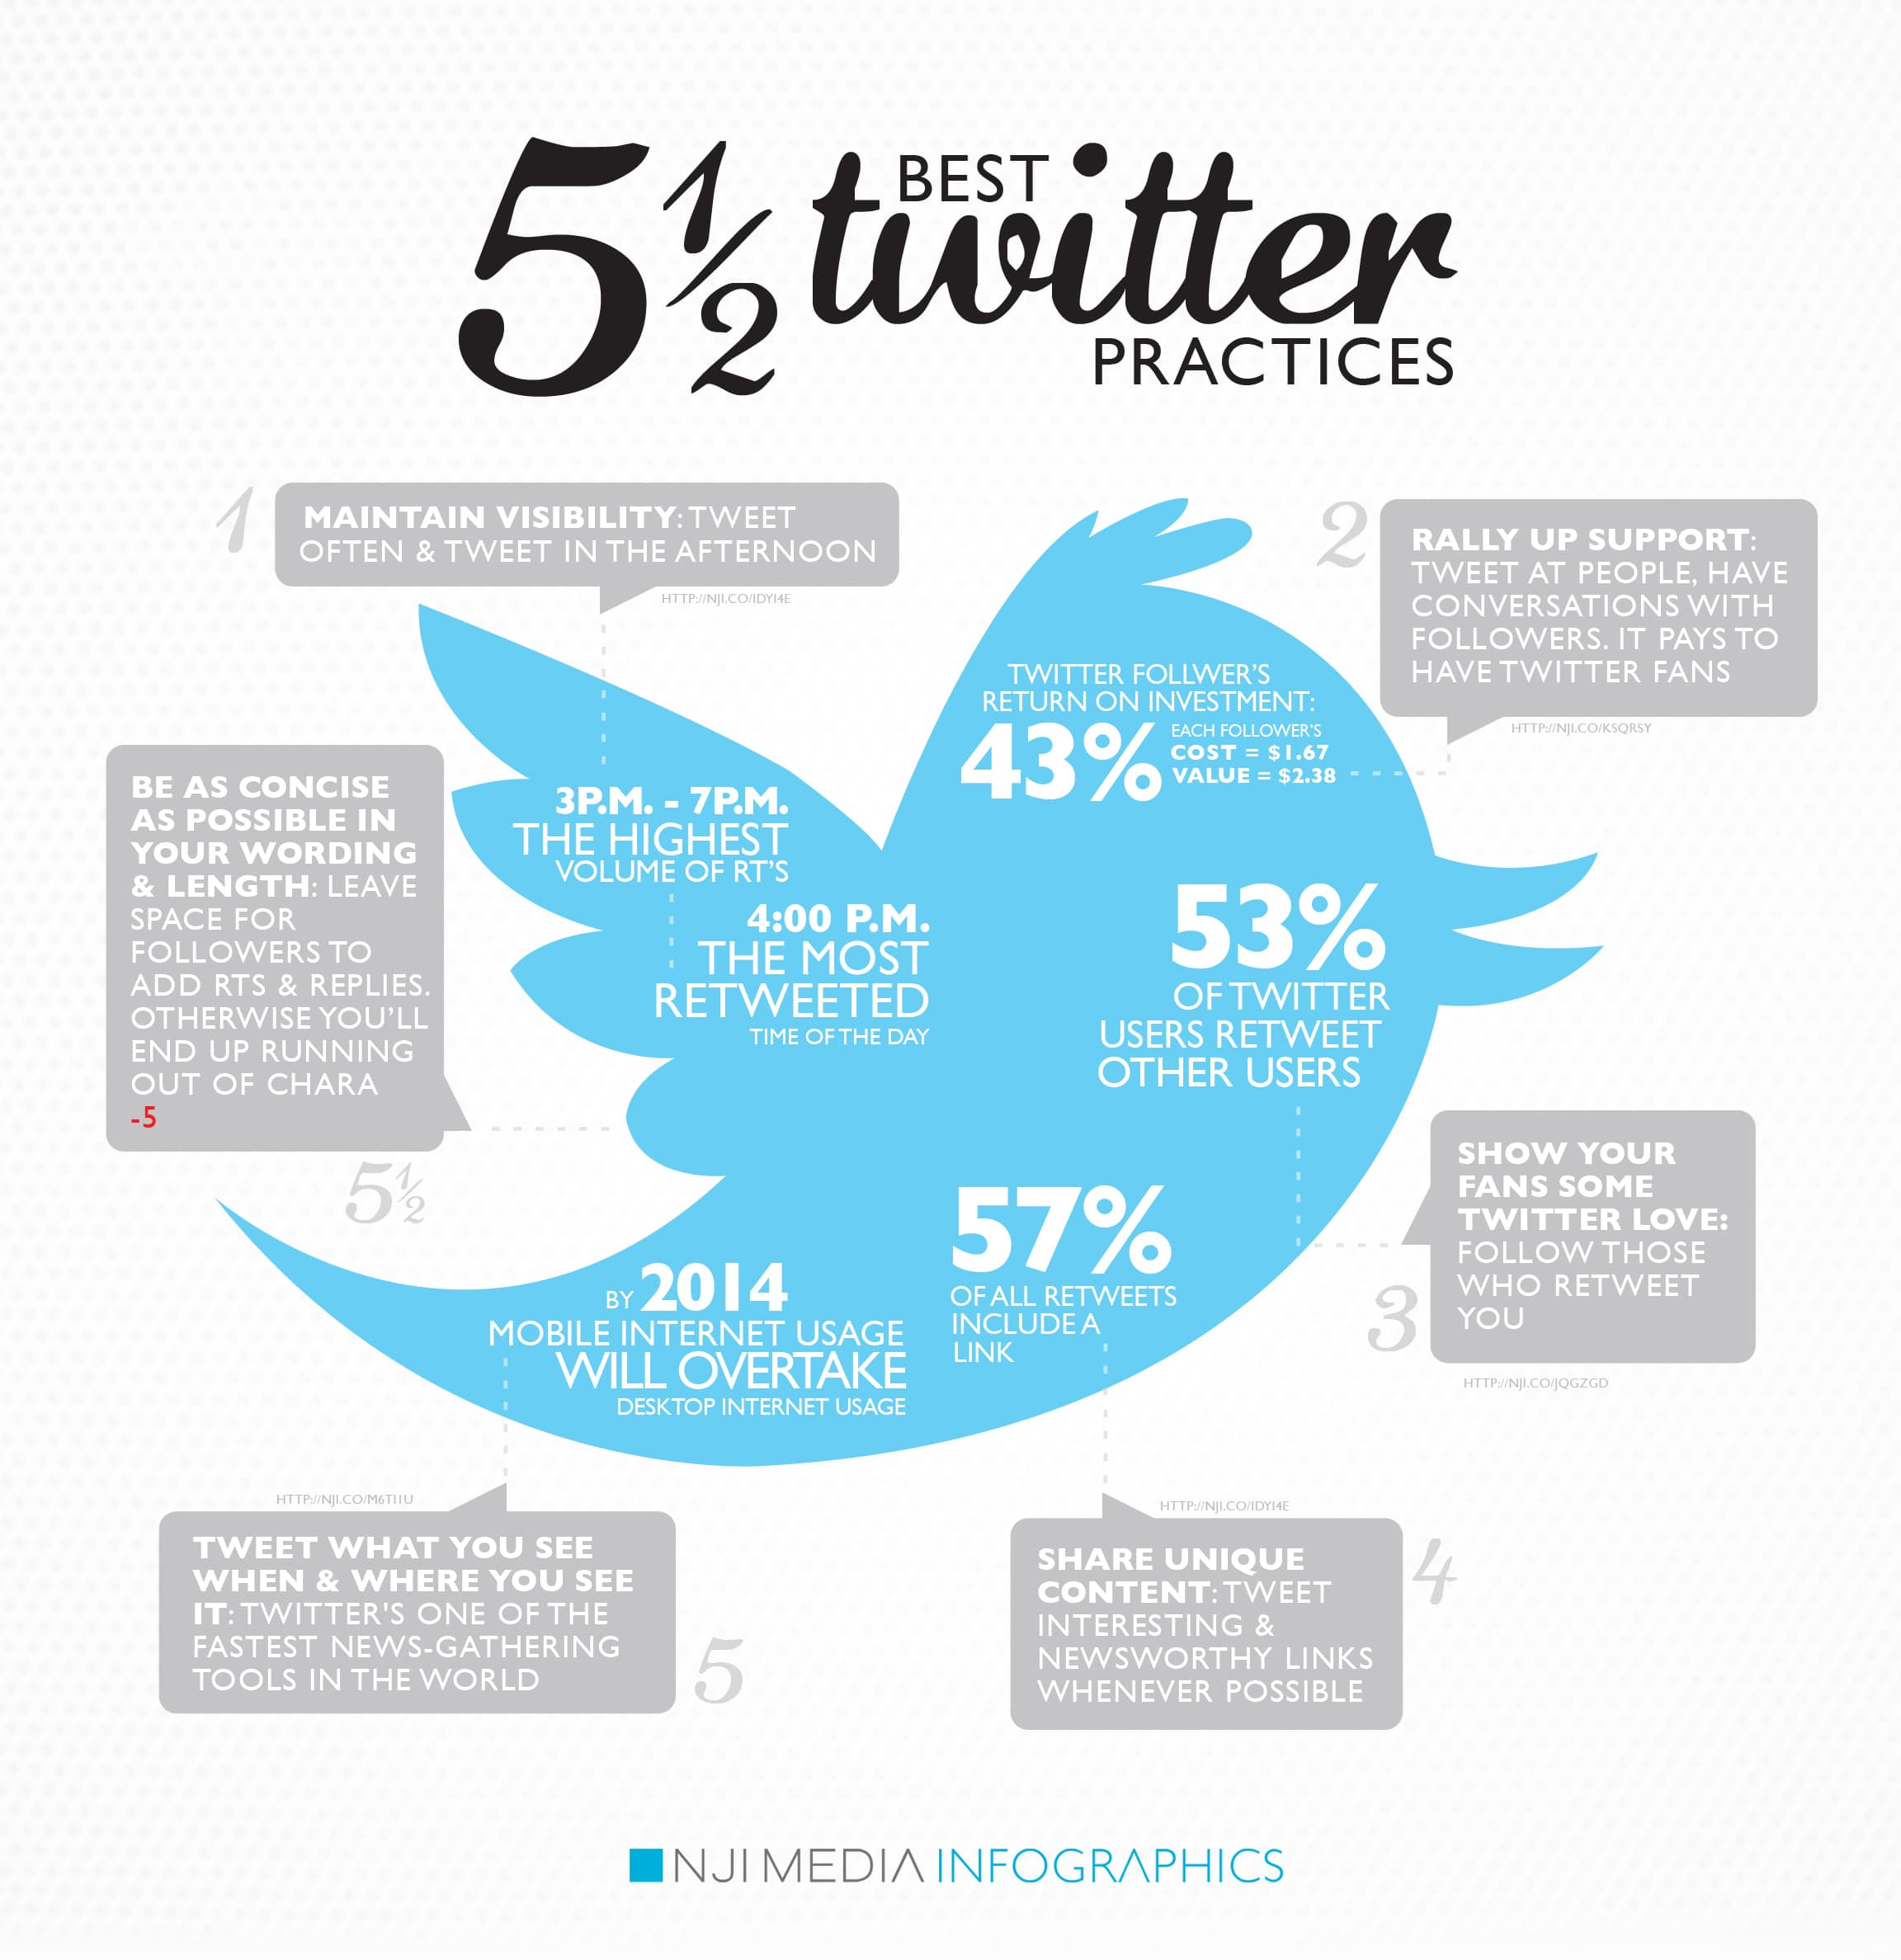 Best Twitter Practices In 2012 [Infographic]